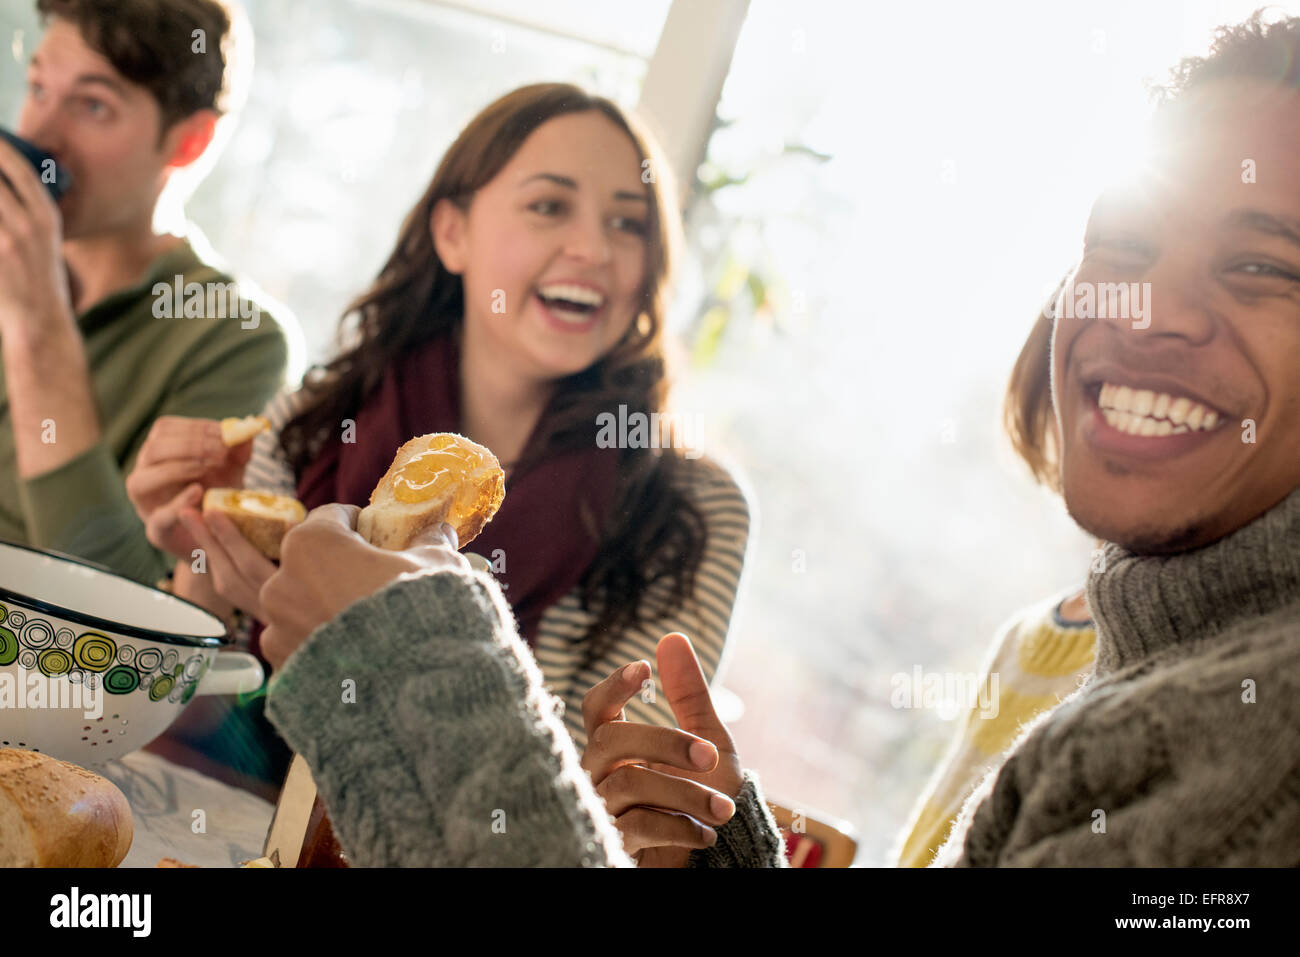 Three people sitting at a table, smiling, eating, drinking and chatting. - Stock Image